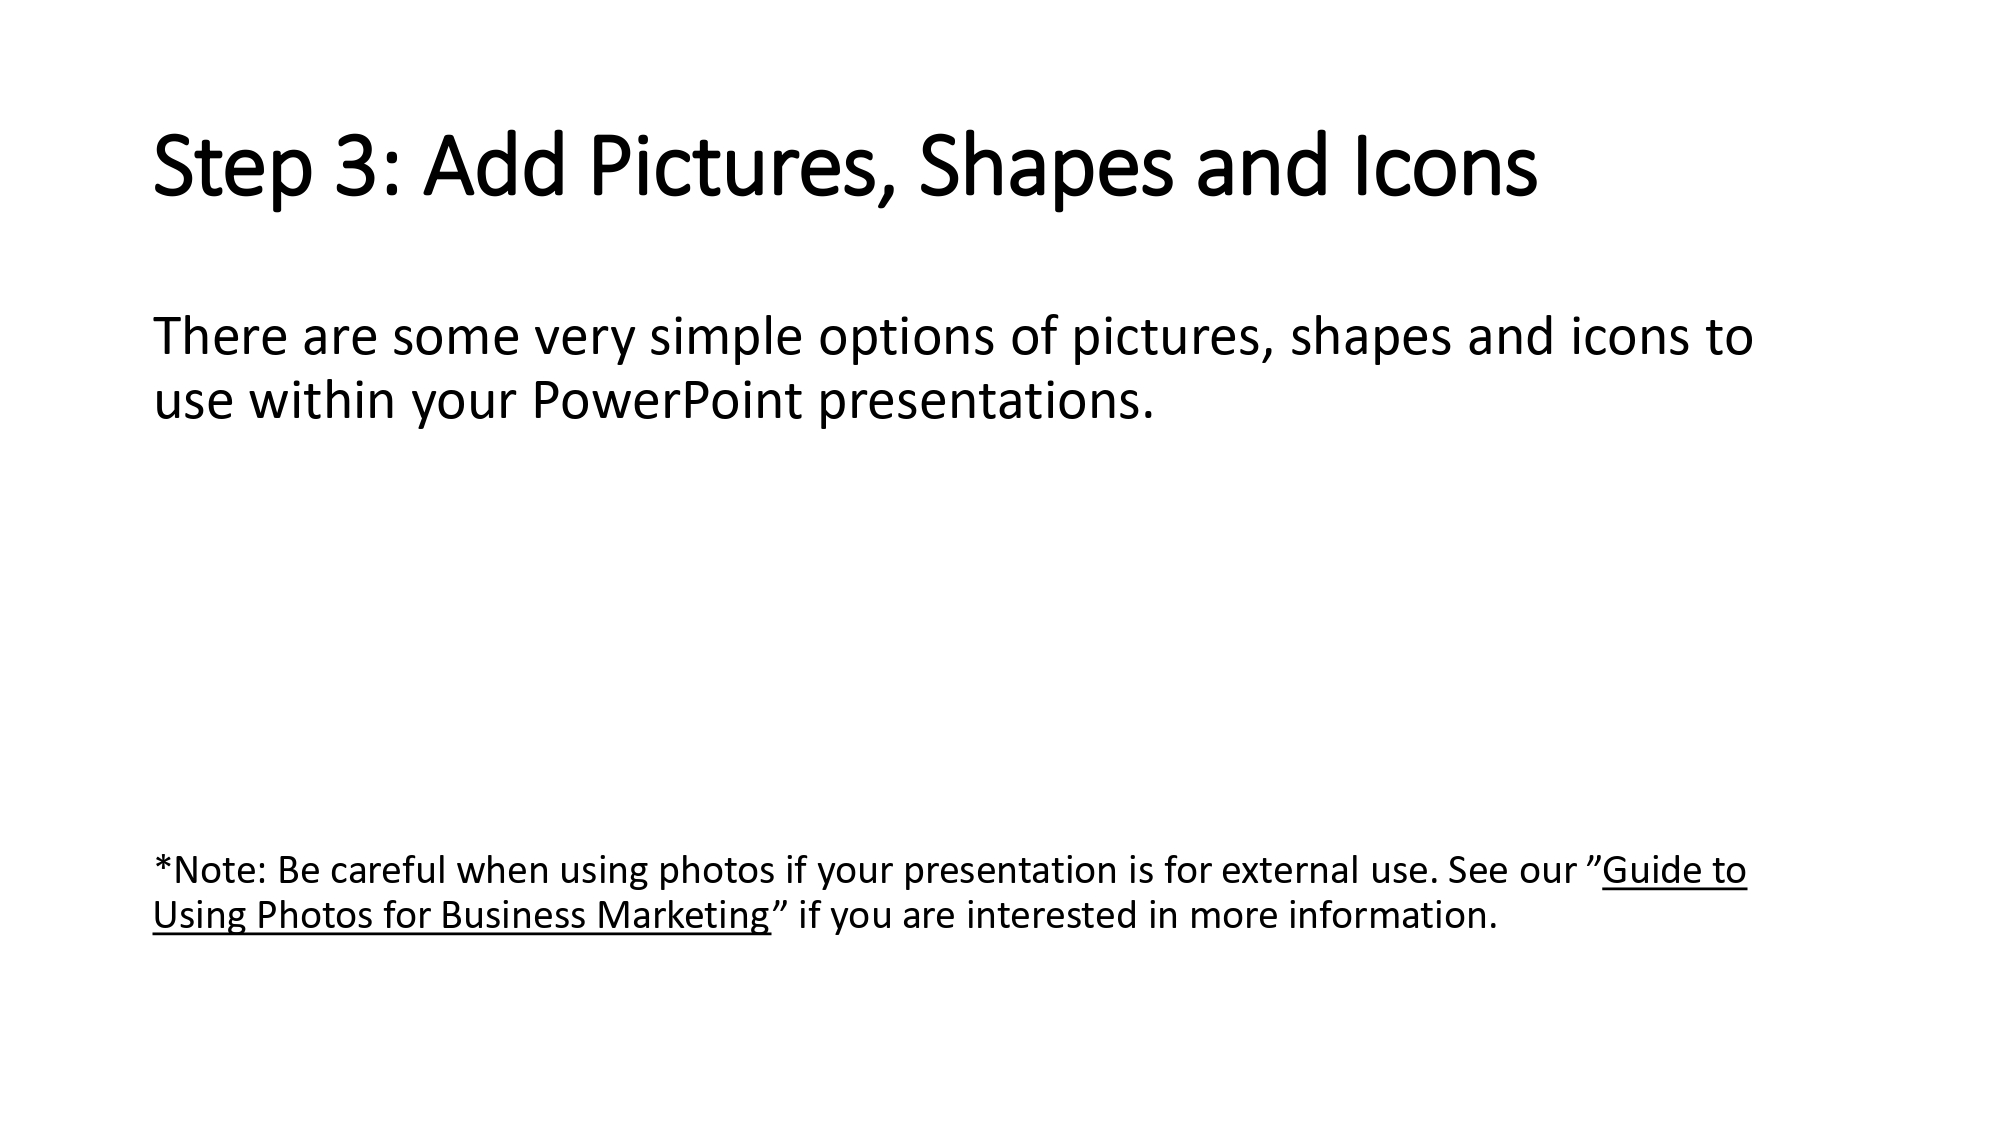 Guide to Creating a Simple PowerPoint_compressed (1)_page-0013